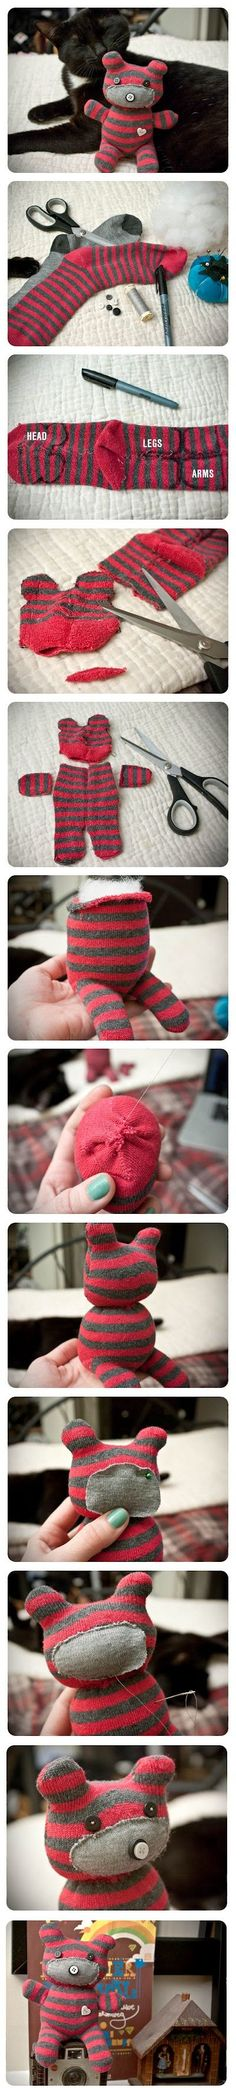 Çoraptan Oyuncak Modelleri ve Yapımı beautiful cutest funny wild basteln lustig zeichnen Sock Crafts, Cute Crafts, Crafts To Do, Fabric Crafts, Sewing Crafts, Craft Projects, Crafts For Kids, Craft Ideas, Sewing Projects